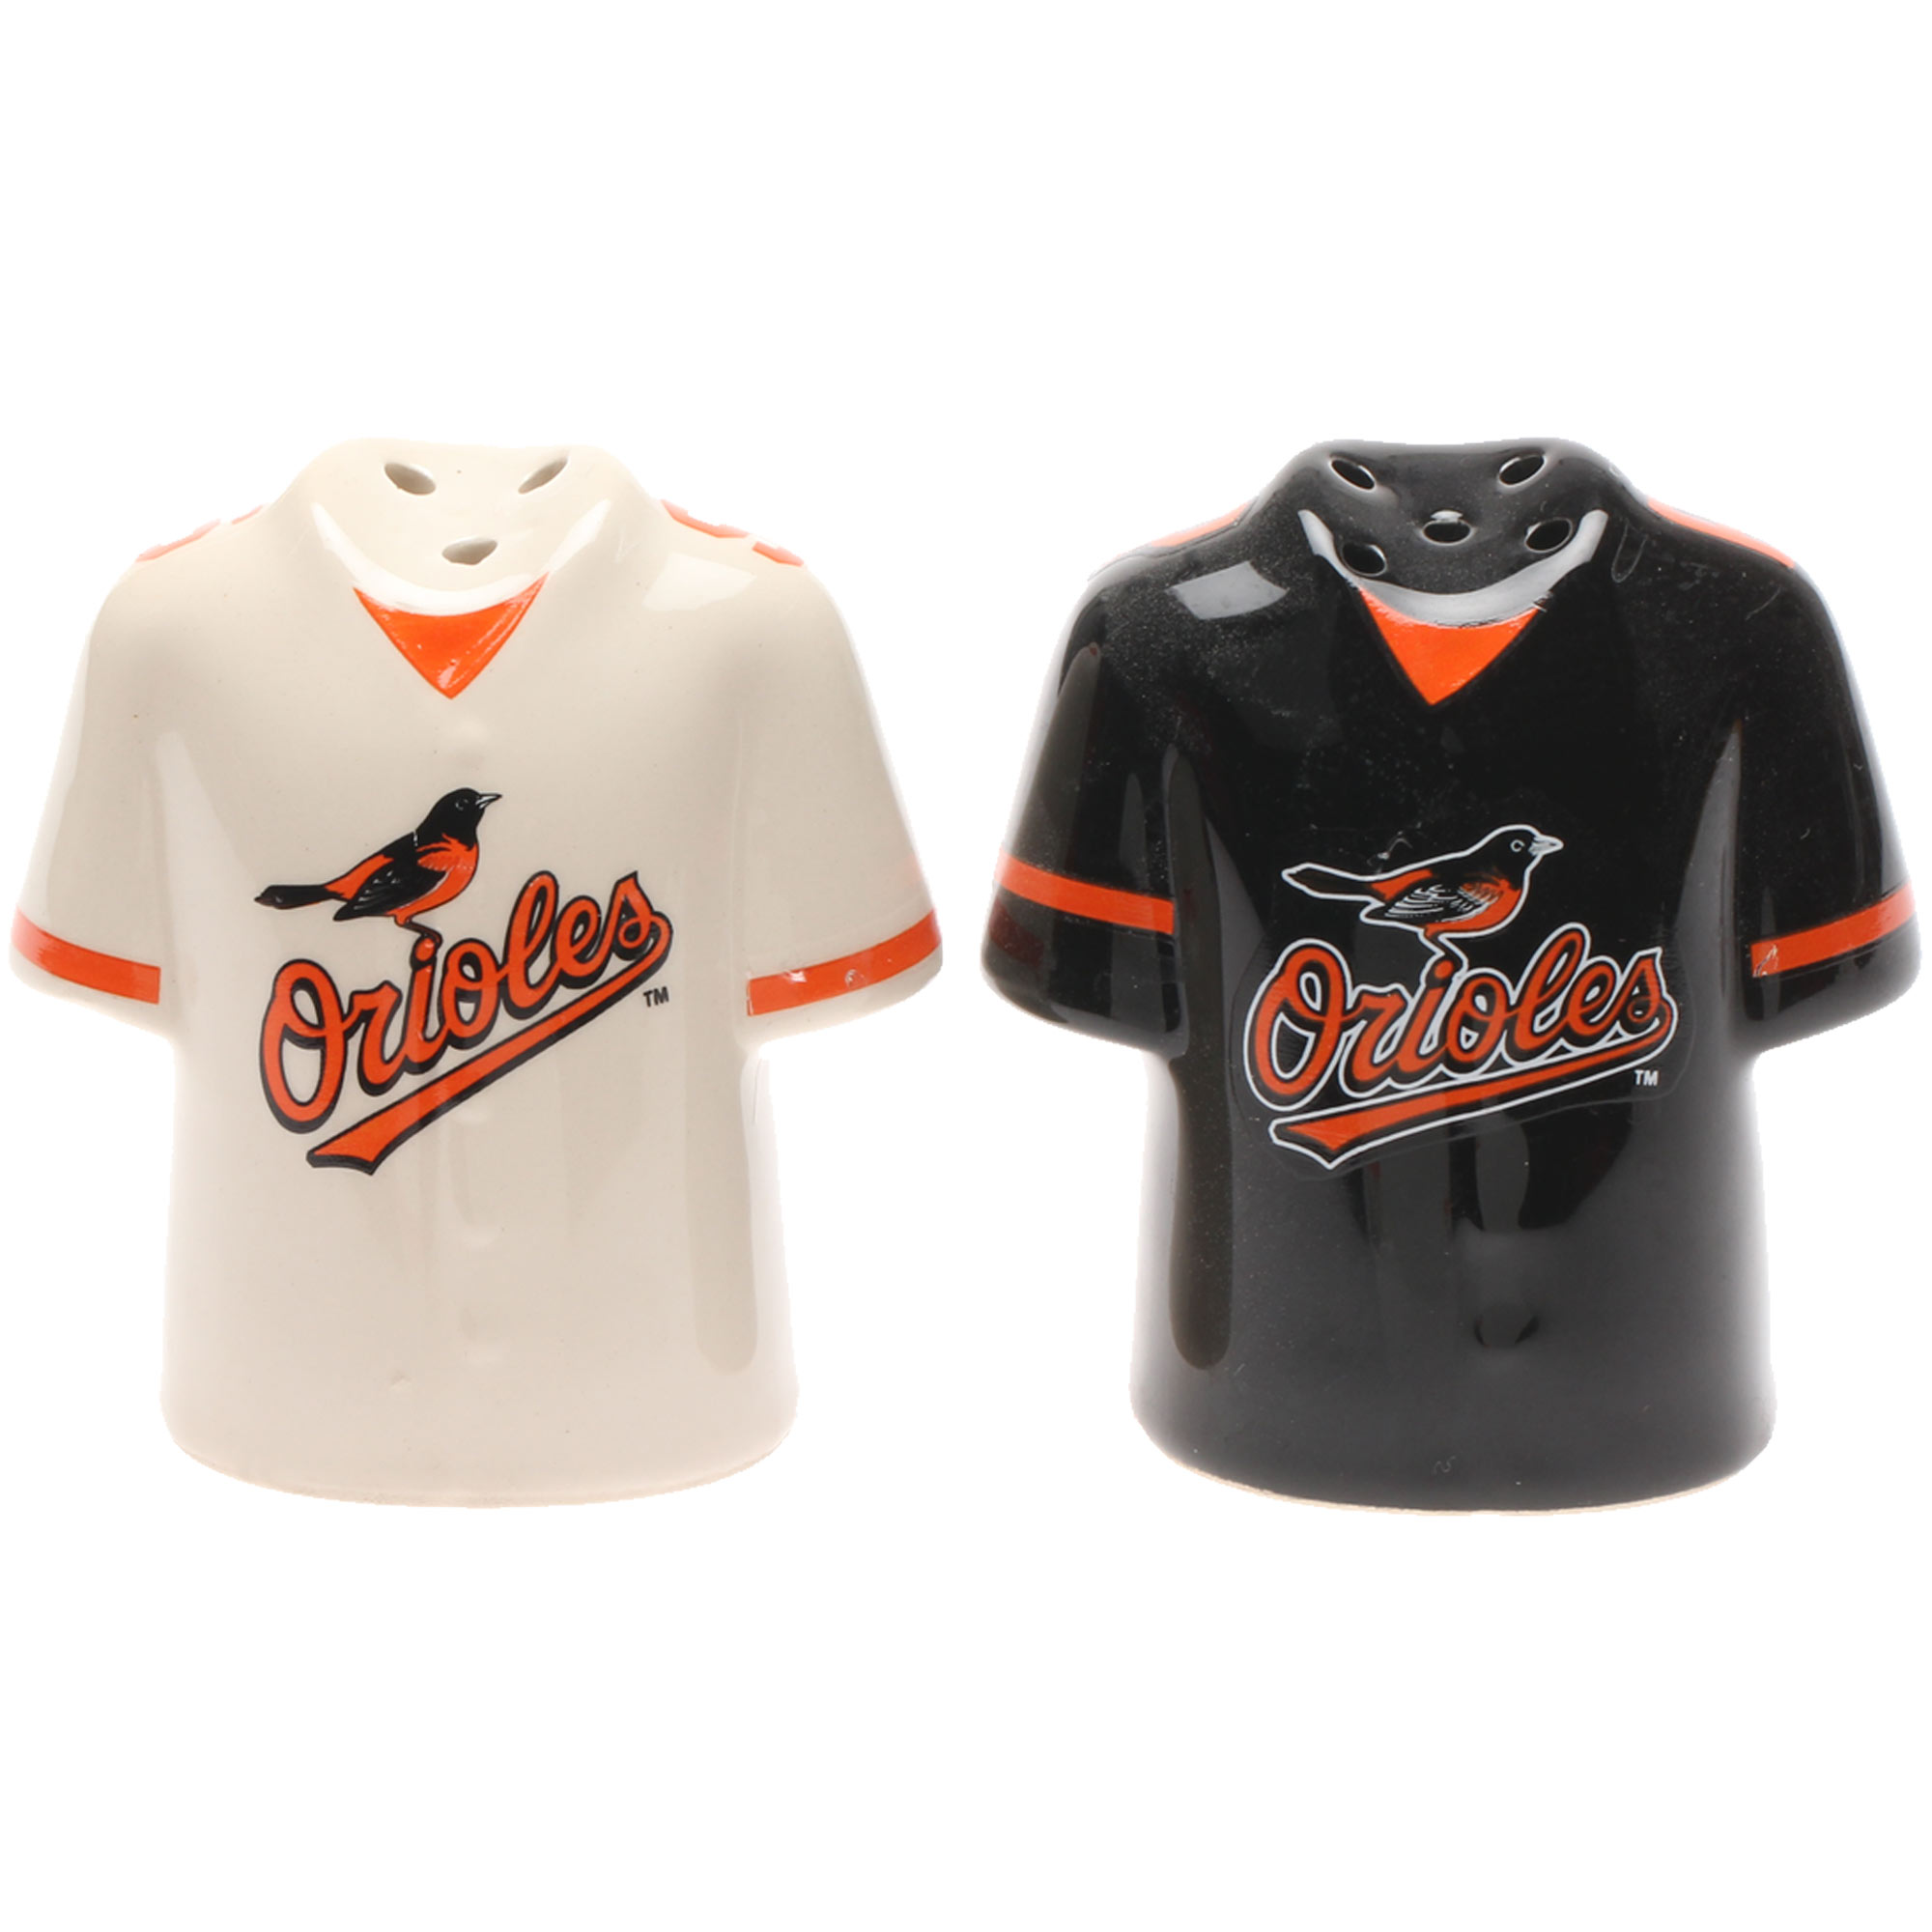 Baltimore Orioles Gameday Salt and Pepper Shakers - No Size